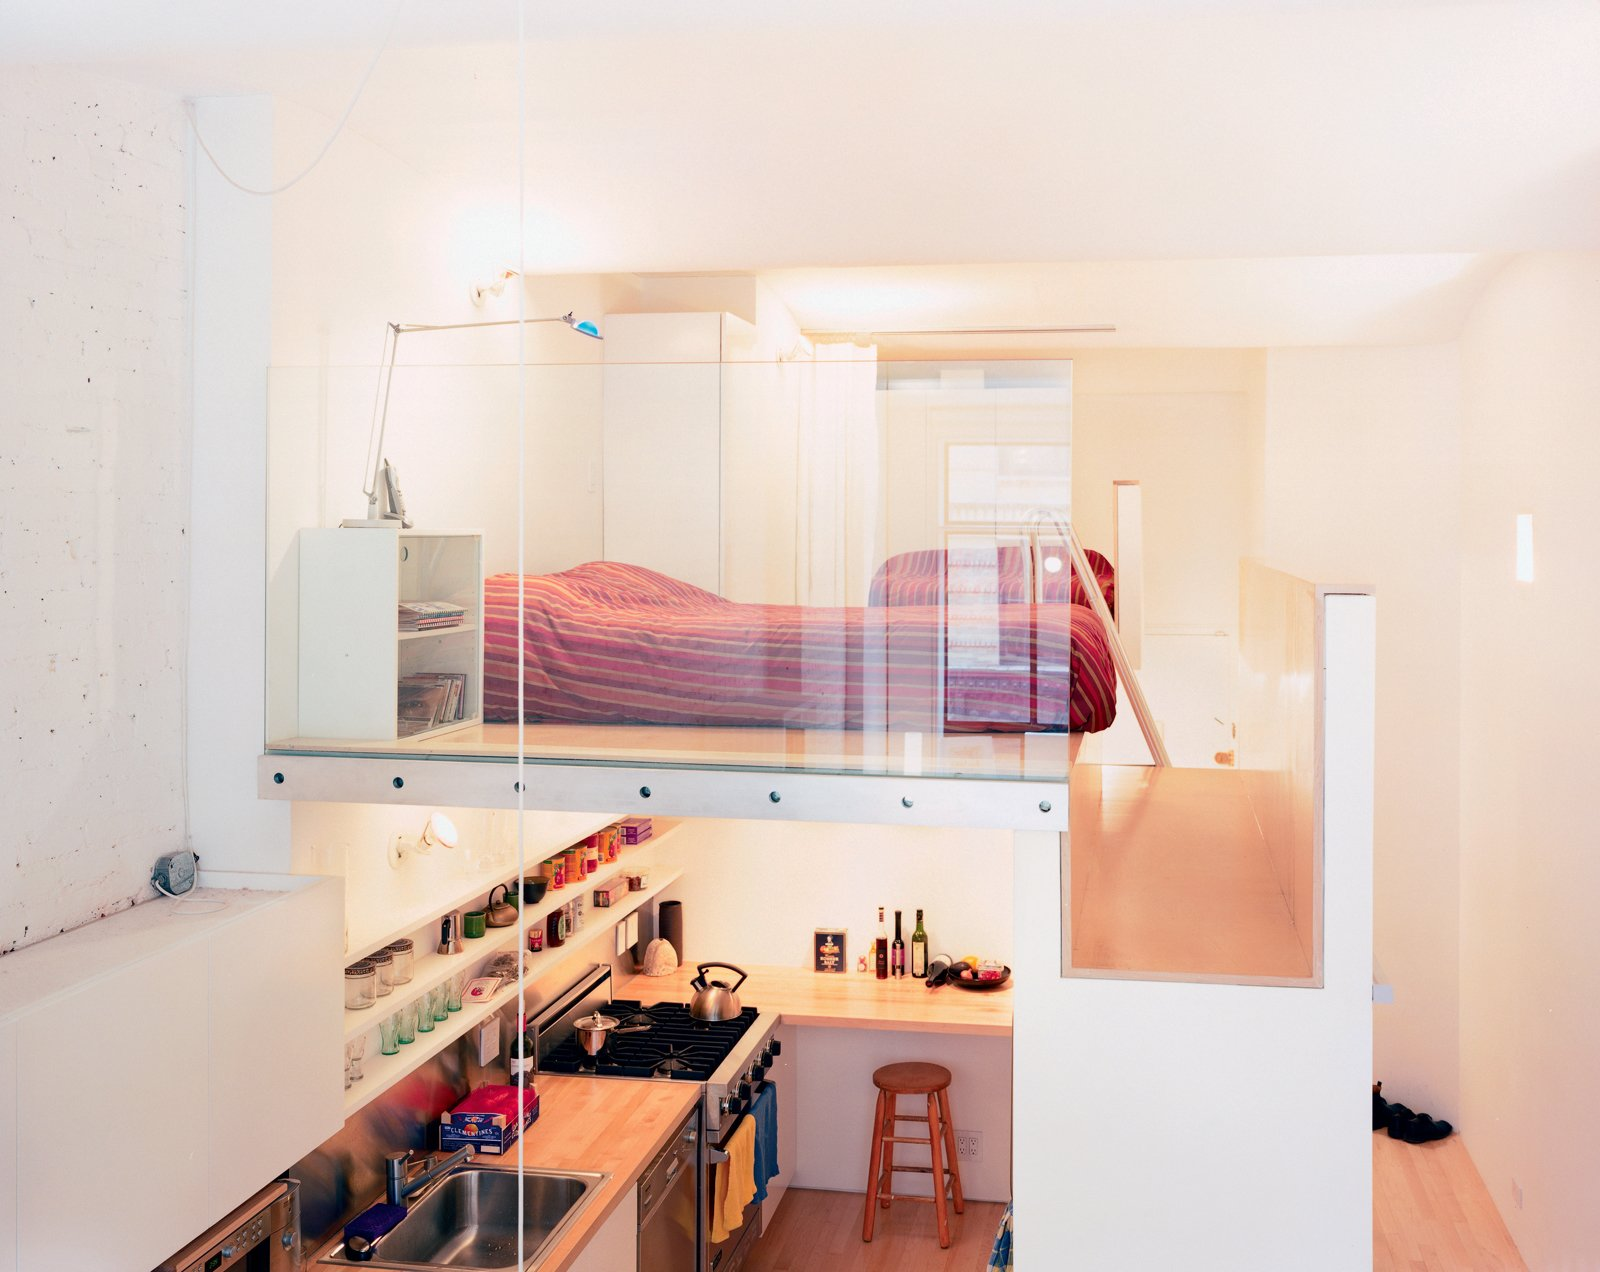 With the bedroom directly above the kitchen, the architects met the challenge of stacking two rooms, each with a seven-foot ceiling height, in only 12 feet of vertical space by creating two interlocking puzzle pieces.  Bedrooms by Dwell from Beautiful Bedrooms